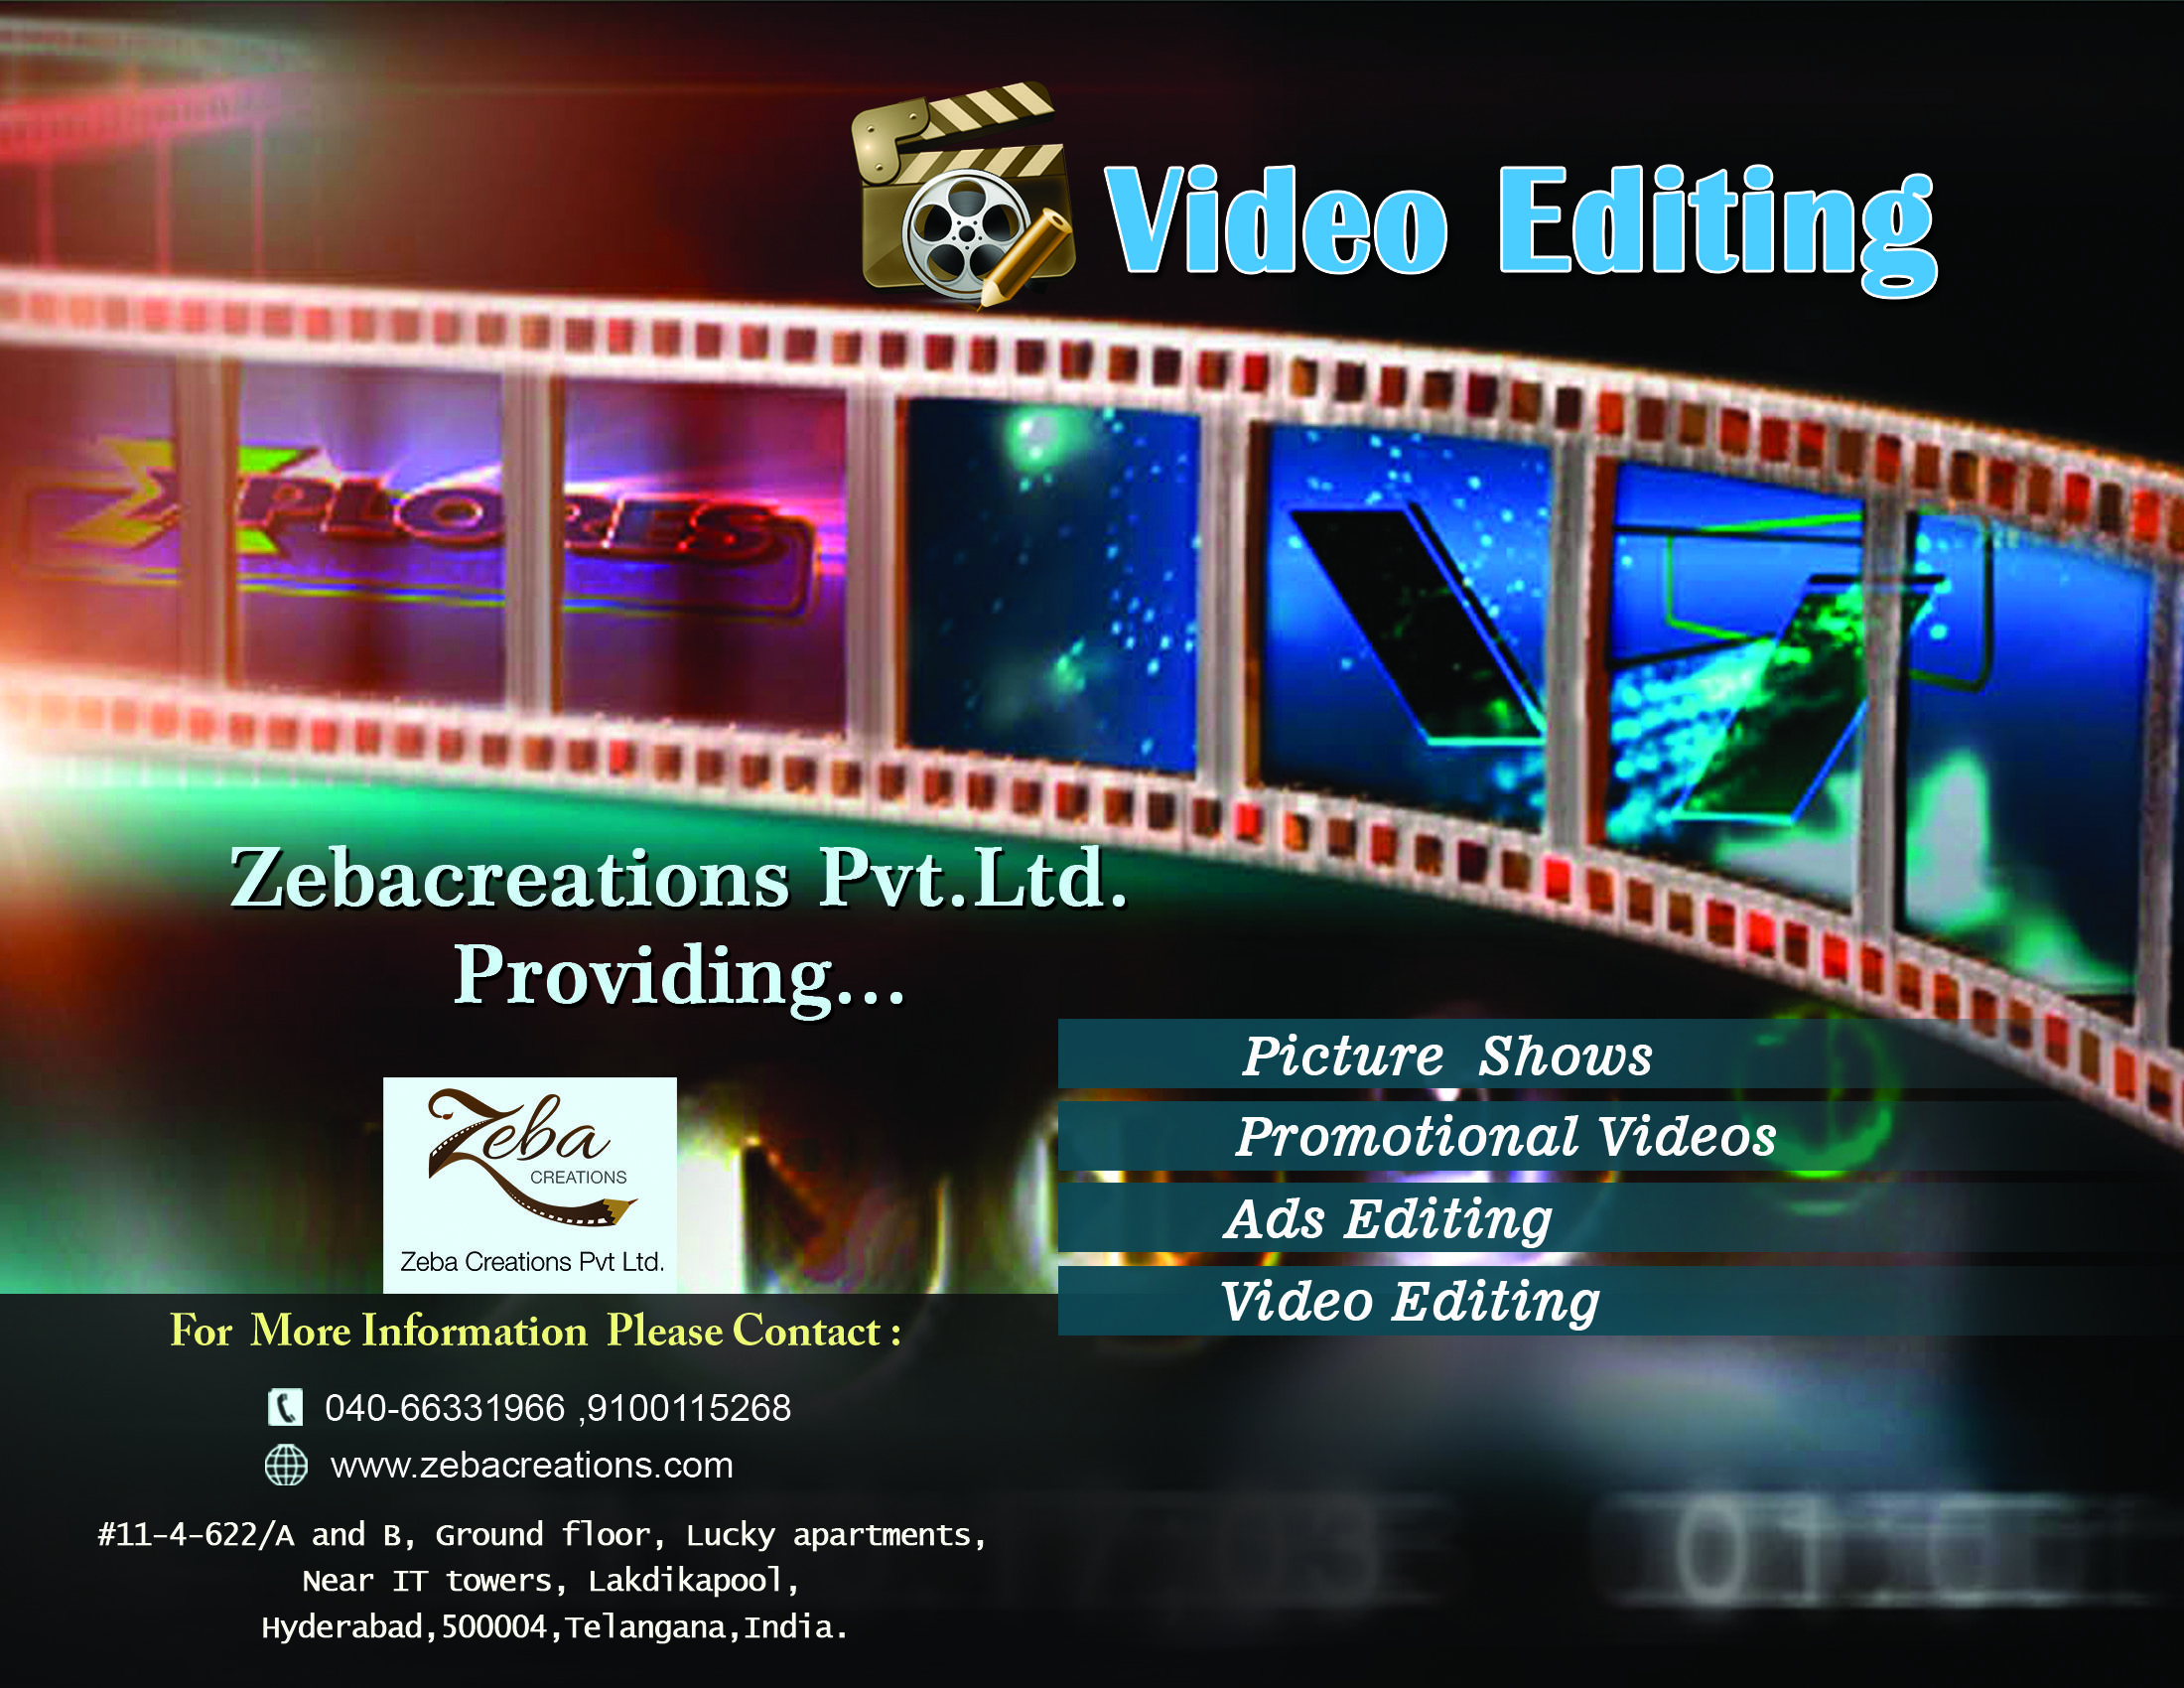 Zebacreations Pvt Ltd Providing Video Editing Services See More Http Www Zebacreations Com Promotional Video Video Editing Video